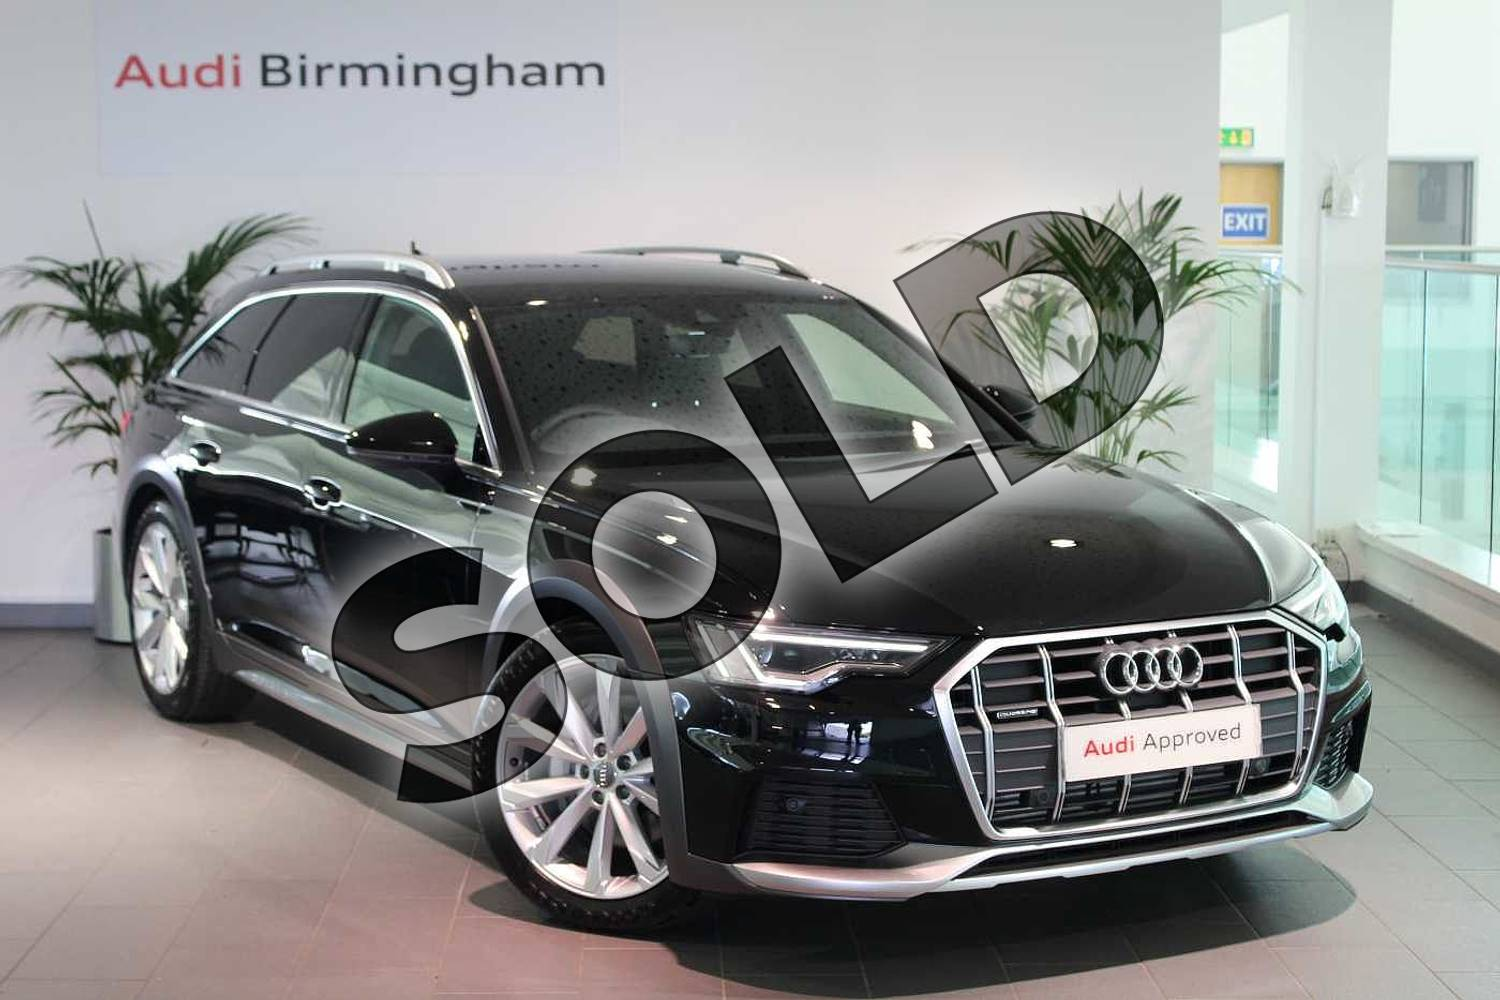 2020 Audi A6 Allroad Diesel Estate 45 TDI Quattro Sport 5dr Tip Auto (Tech) in Myth Black Metallic at Birmingham Audi